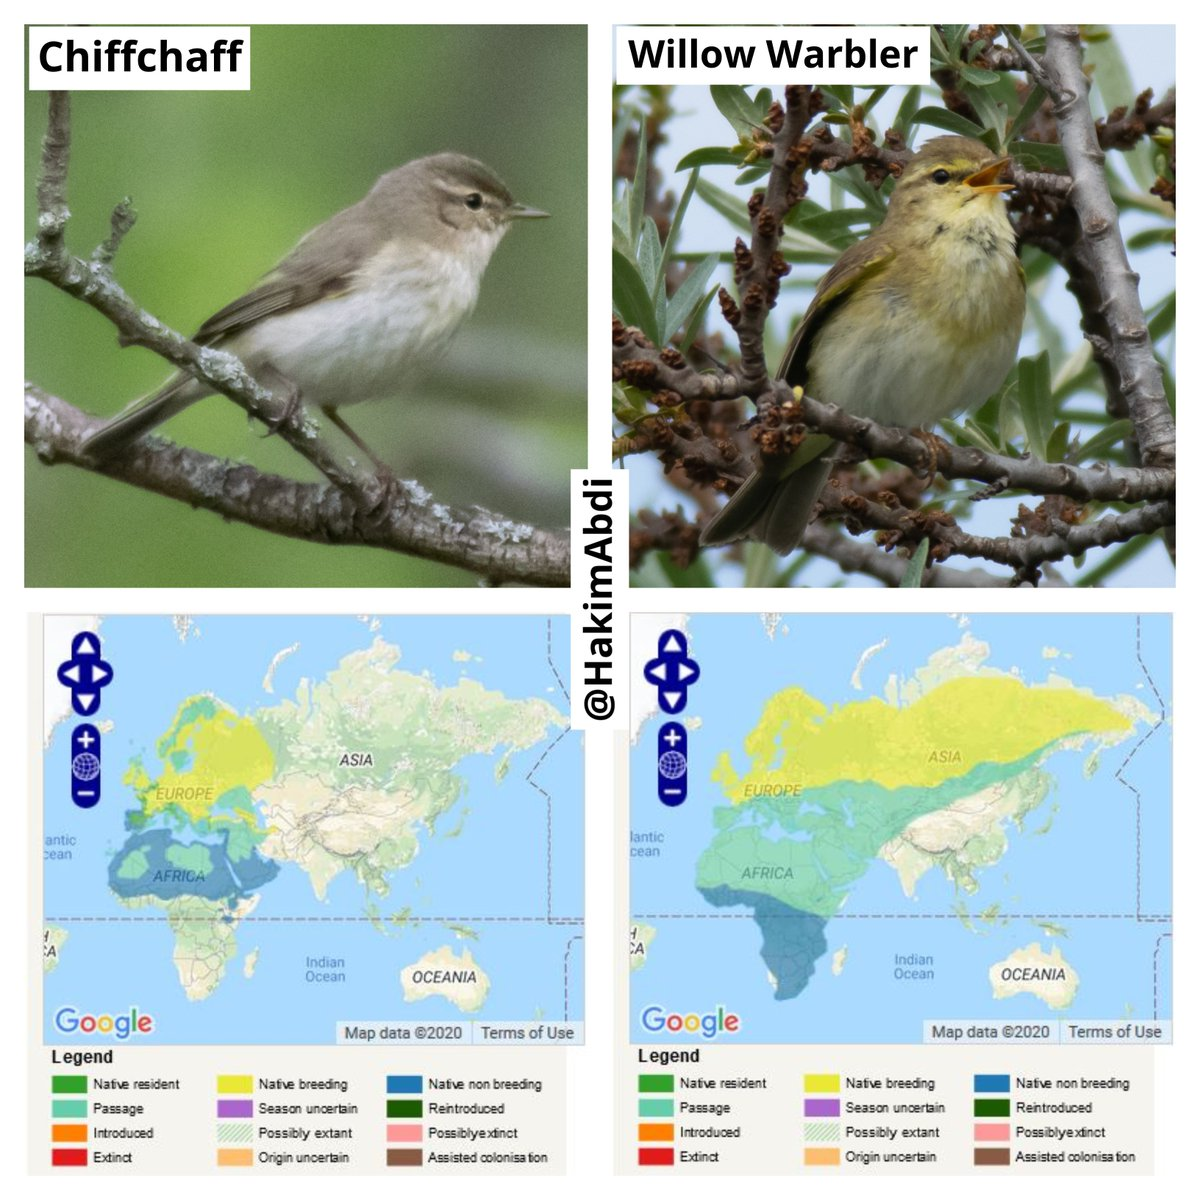 Willow Warblers that breed here are highly migratory. They generally spend the winter in parts of West Africa, and much of Southern Africa. As you can tell from the maps below, Willows and Chiffchaffs spend the winter in different parts of the continent. /2 #birdmigration